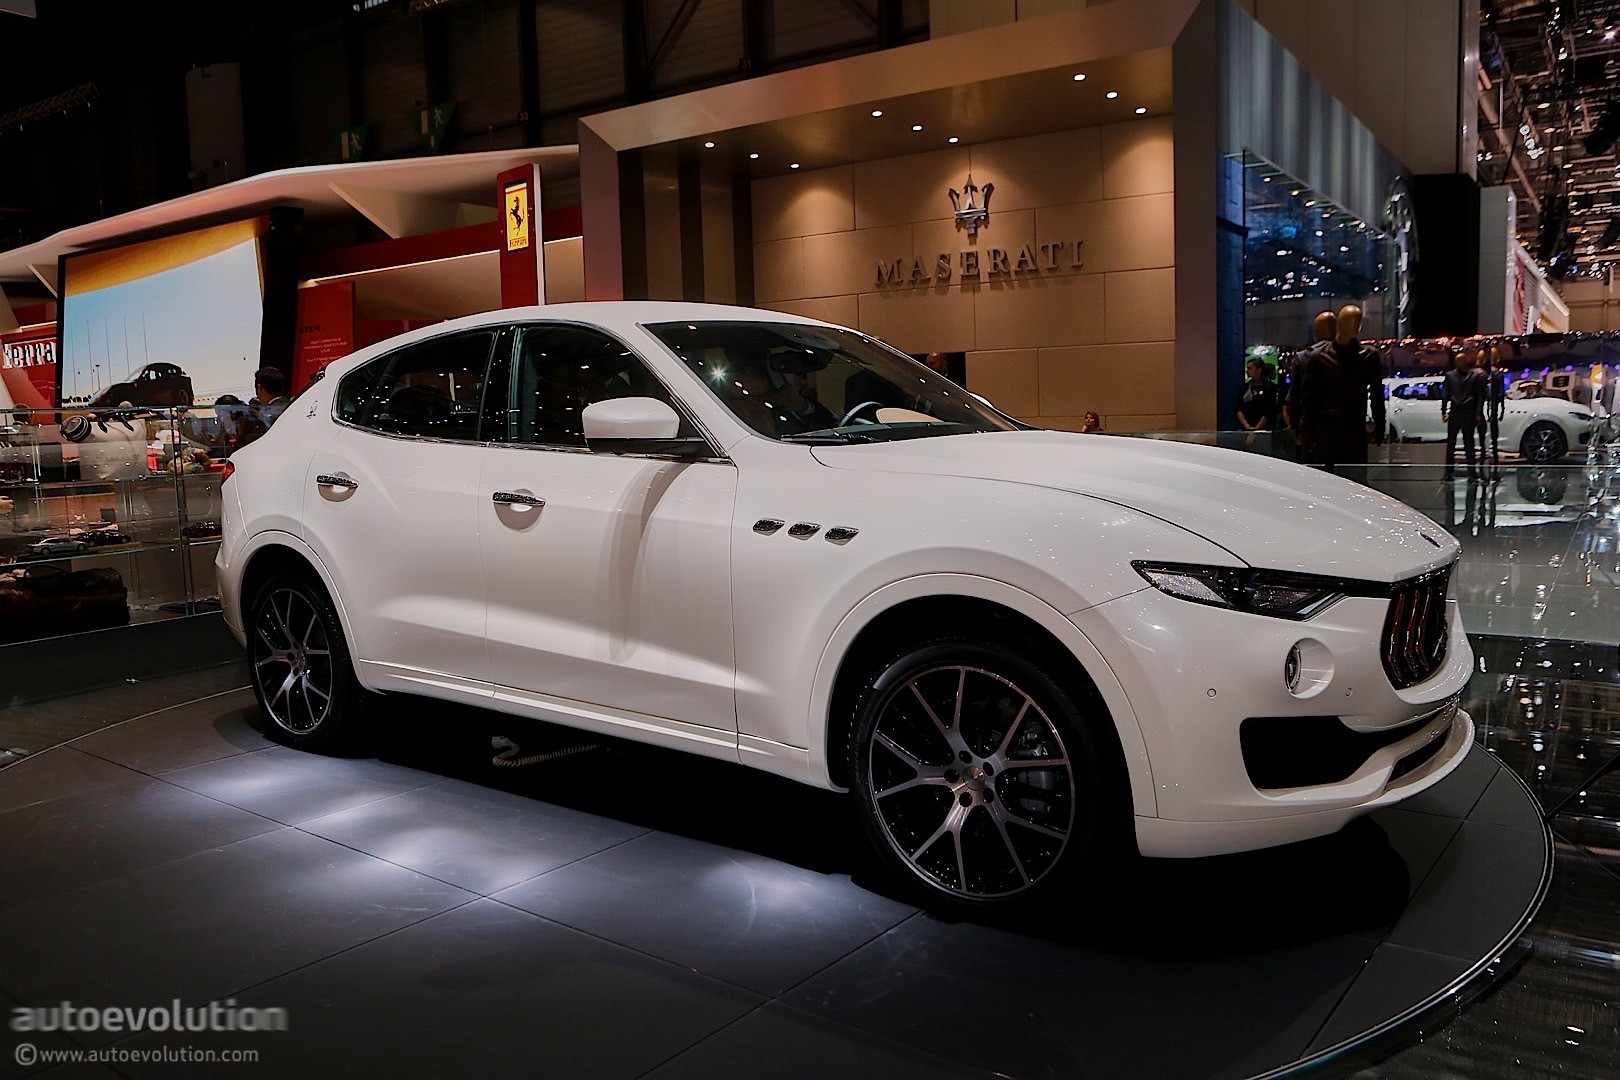 New 300 Chrysler 2016 >> 2017 Maserati Levante US Pricing Announced, It's Coming to New York - autoevolution